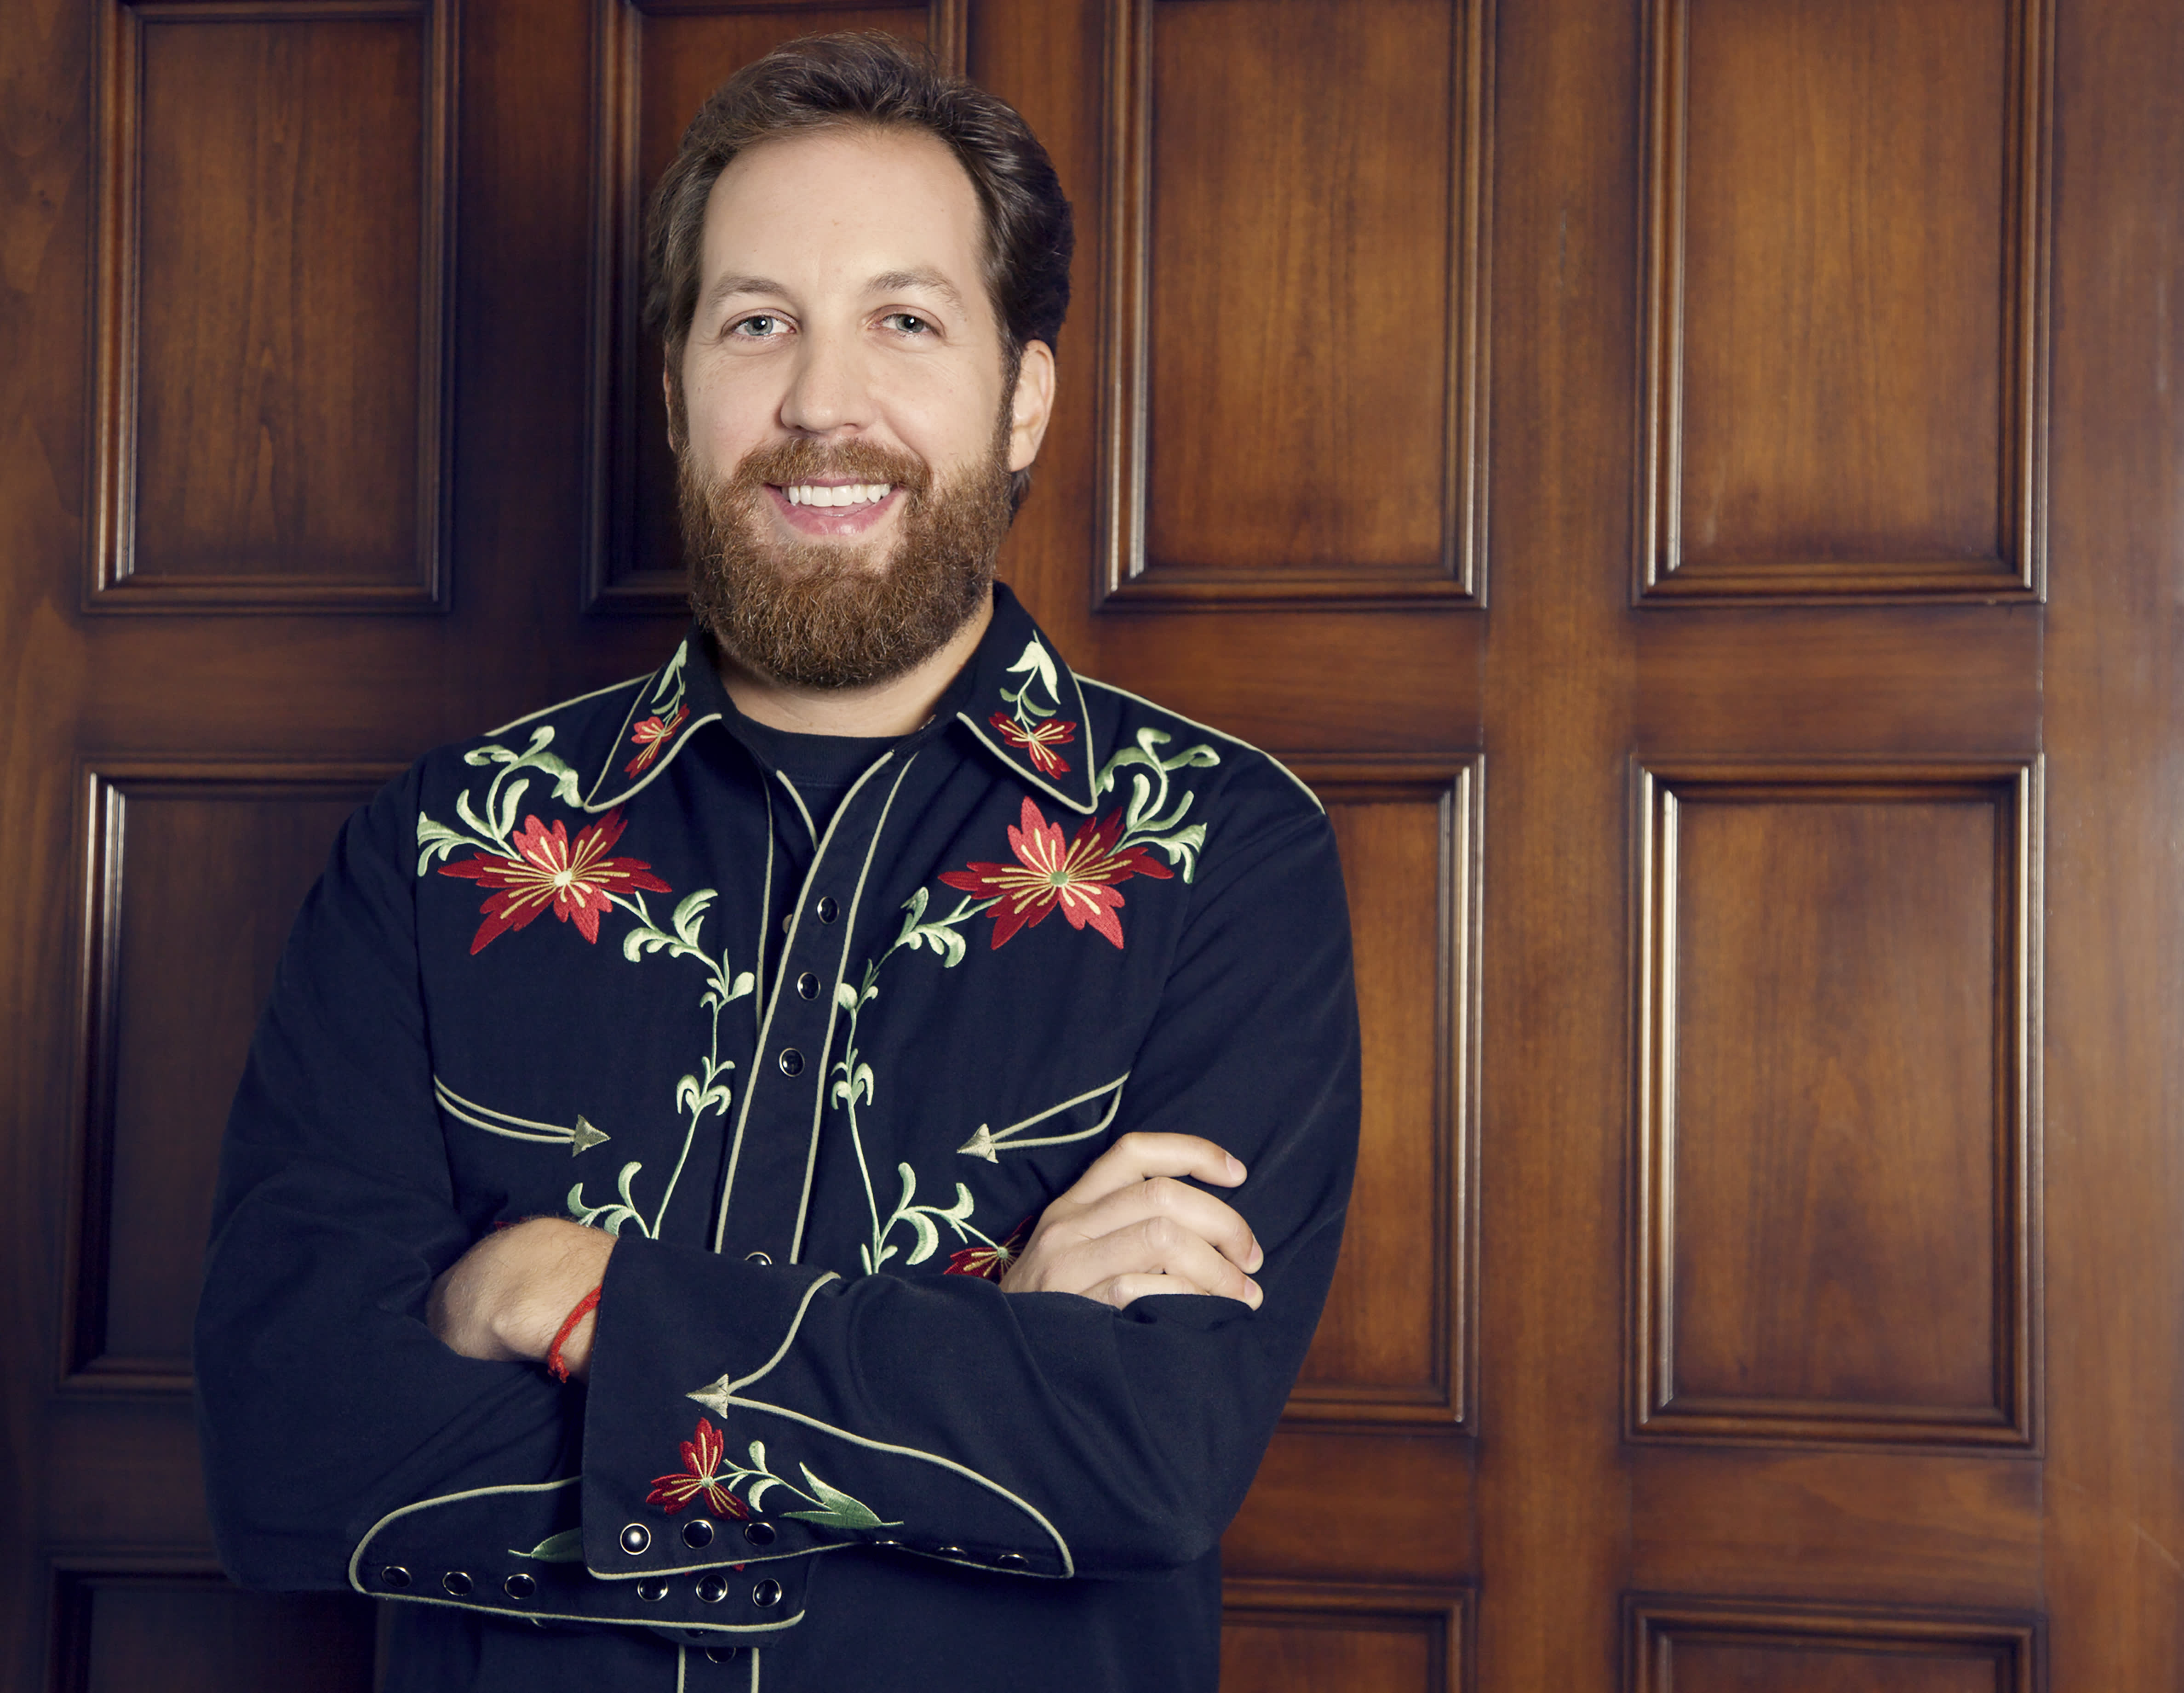 Expect layoffs, consolidations in Silicon Valley: Sacca